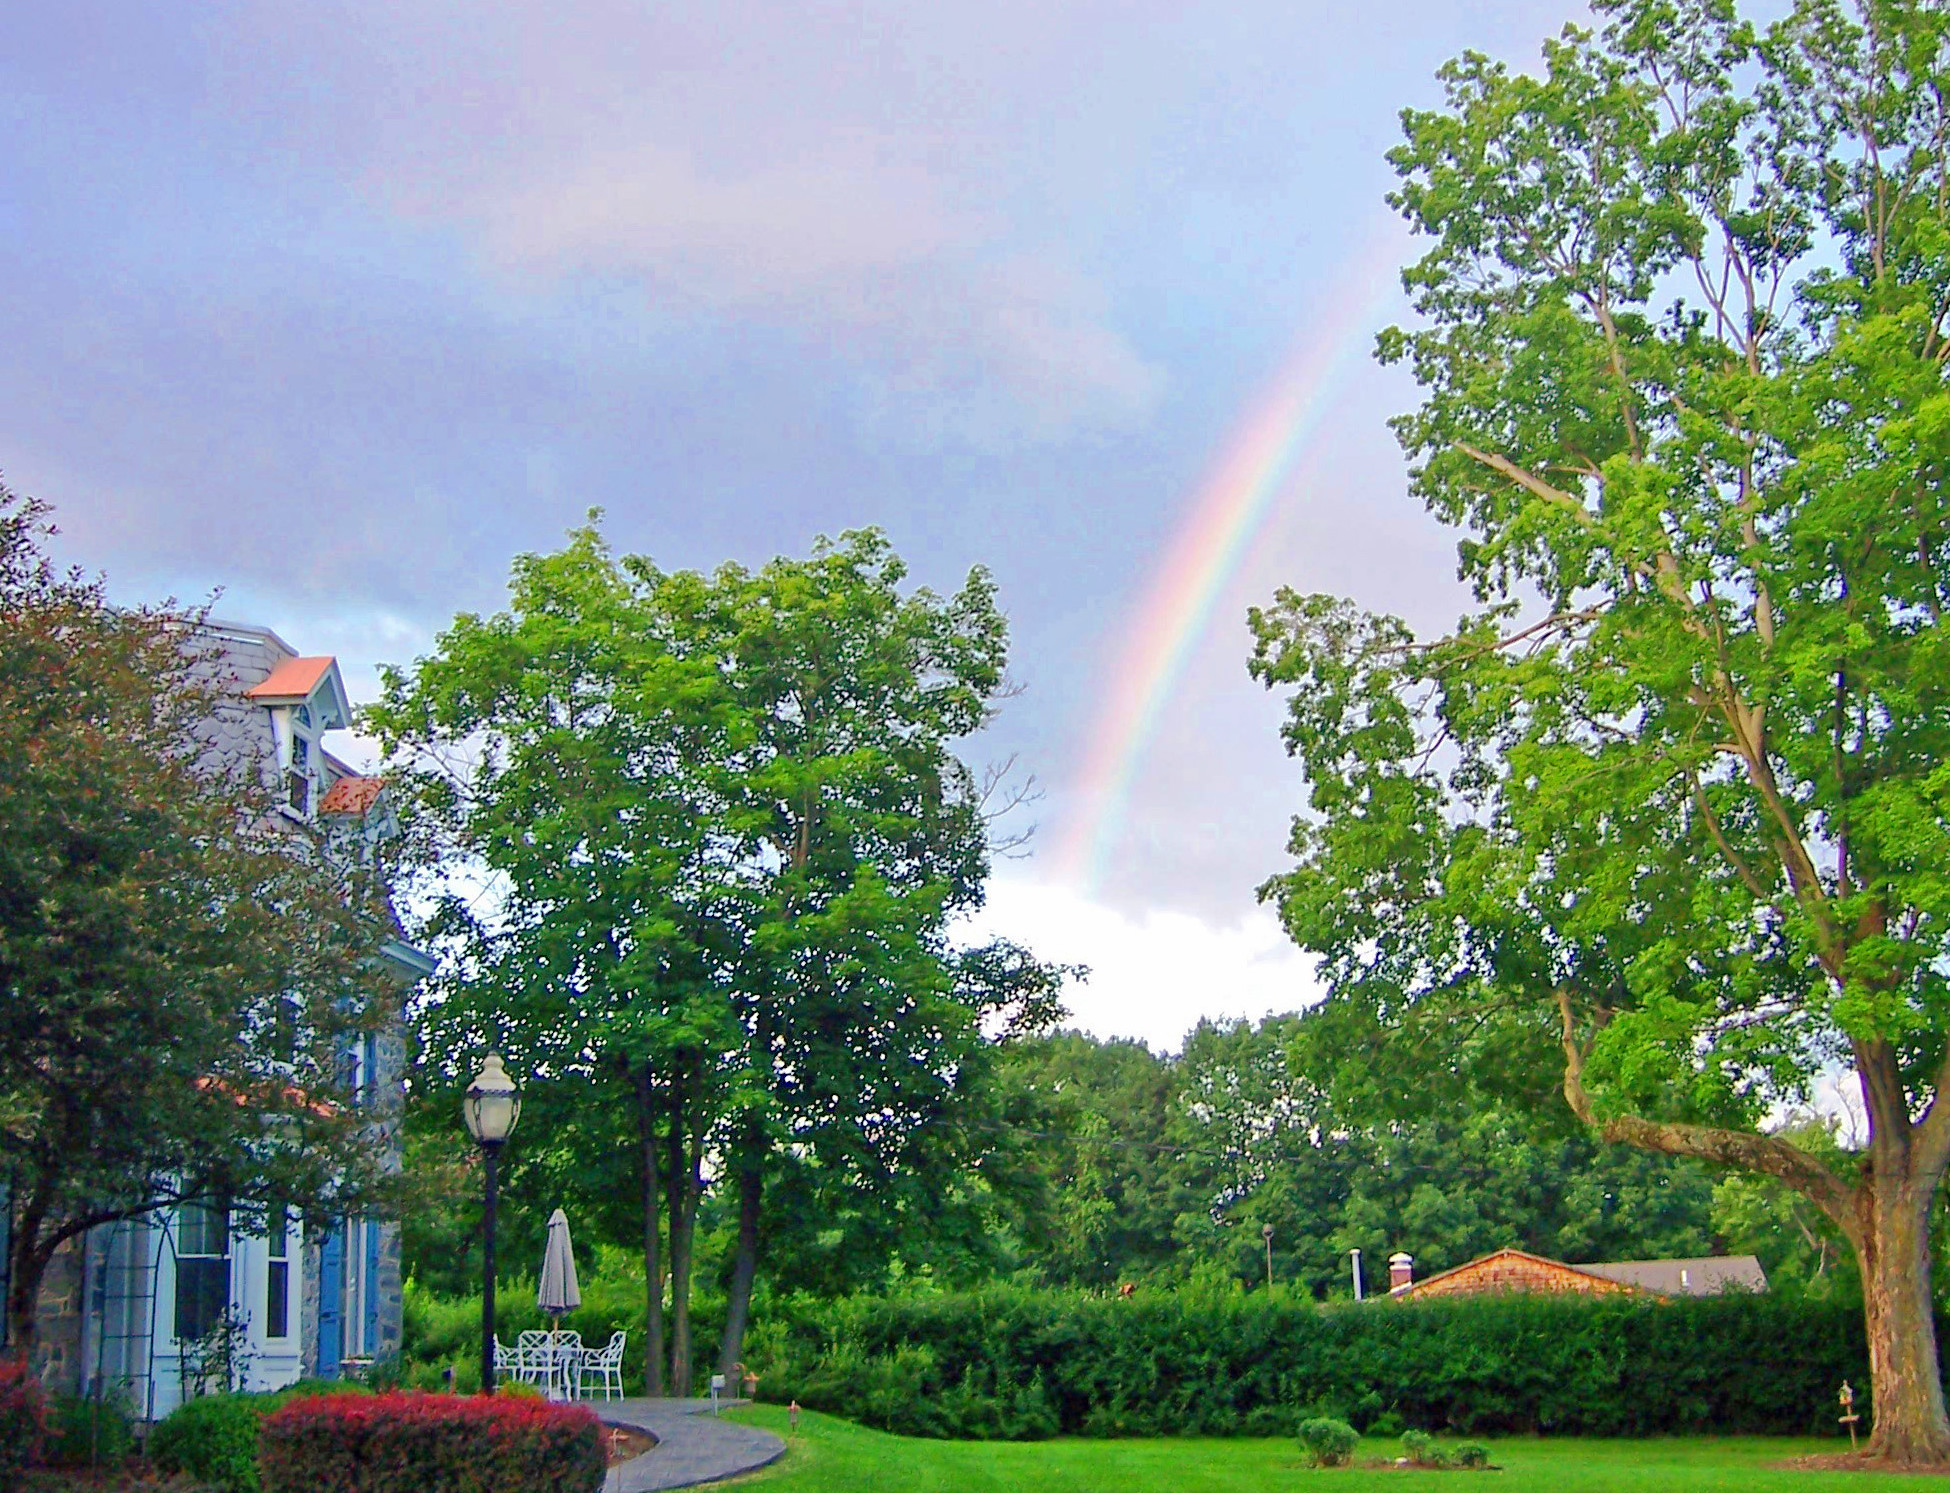 rainy cloudy sky and a rainbow in front of the inn and lawn